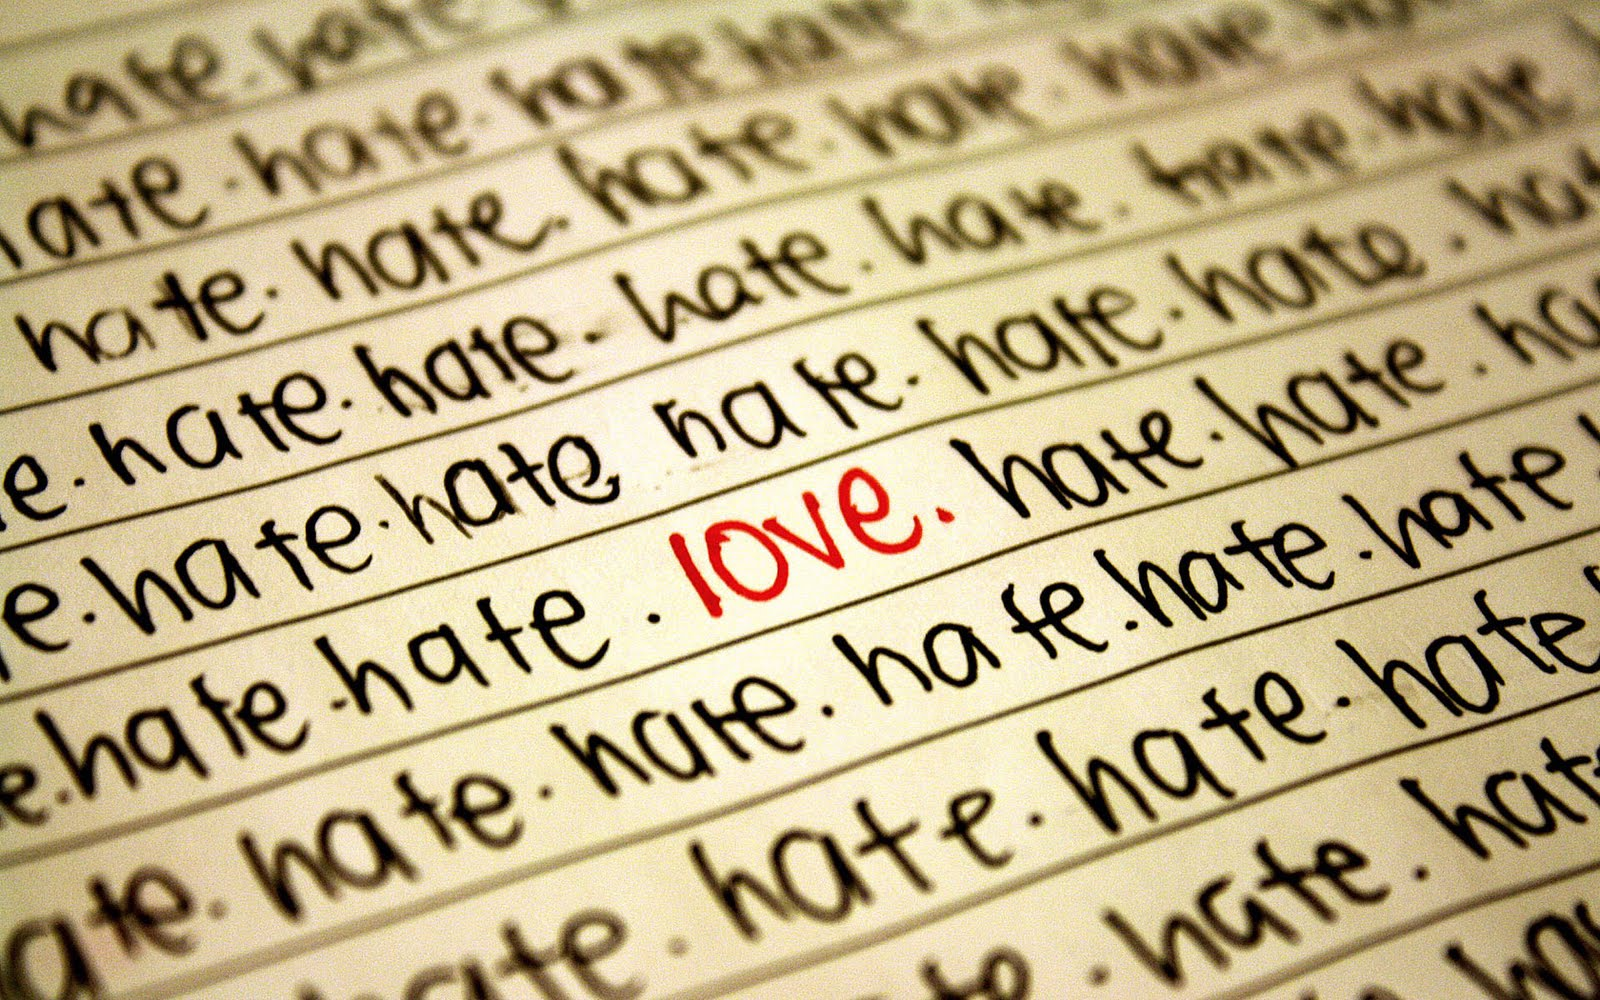 Love Hate Quotes And Wallpapers  Heart Broking I Hate - Hate Love And Lovers - HD Wallpaper